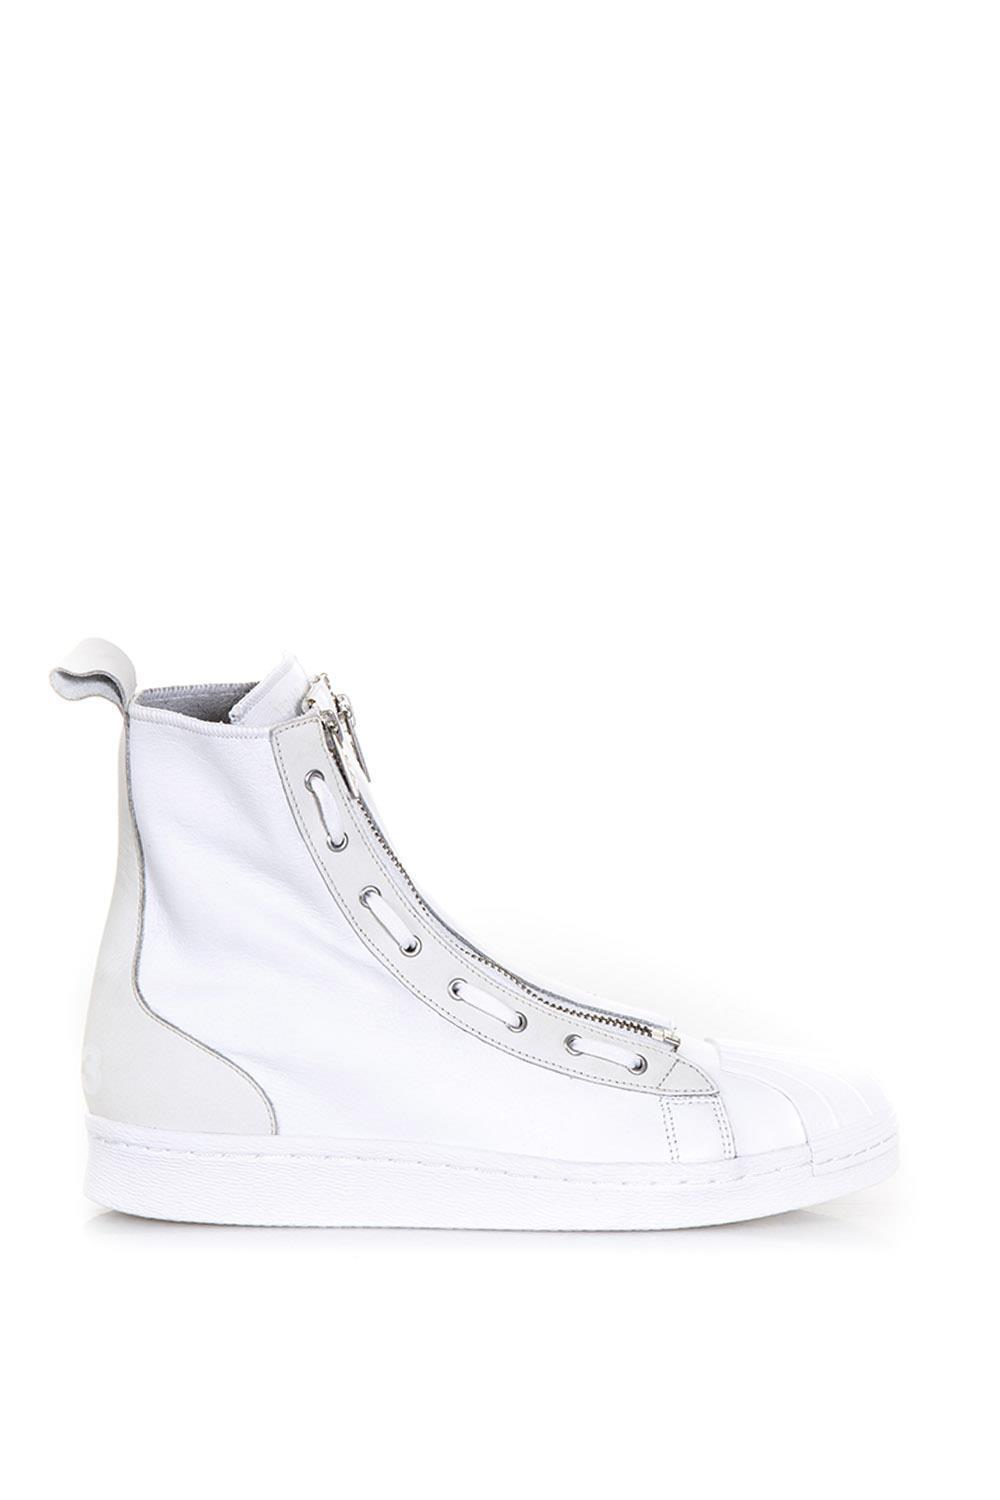 c5dfe77ac Y-3 Leather Super Zip High Top Sneakers In White